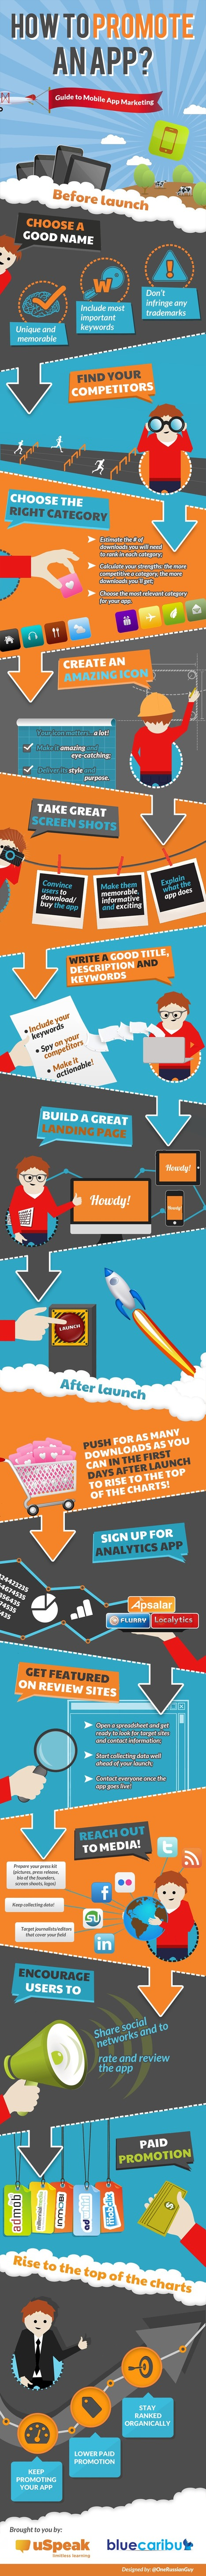 How to Promote an App? Guide to Mobile App Marketing   Mobile Technology   Scoop.it